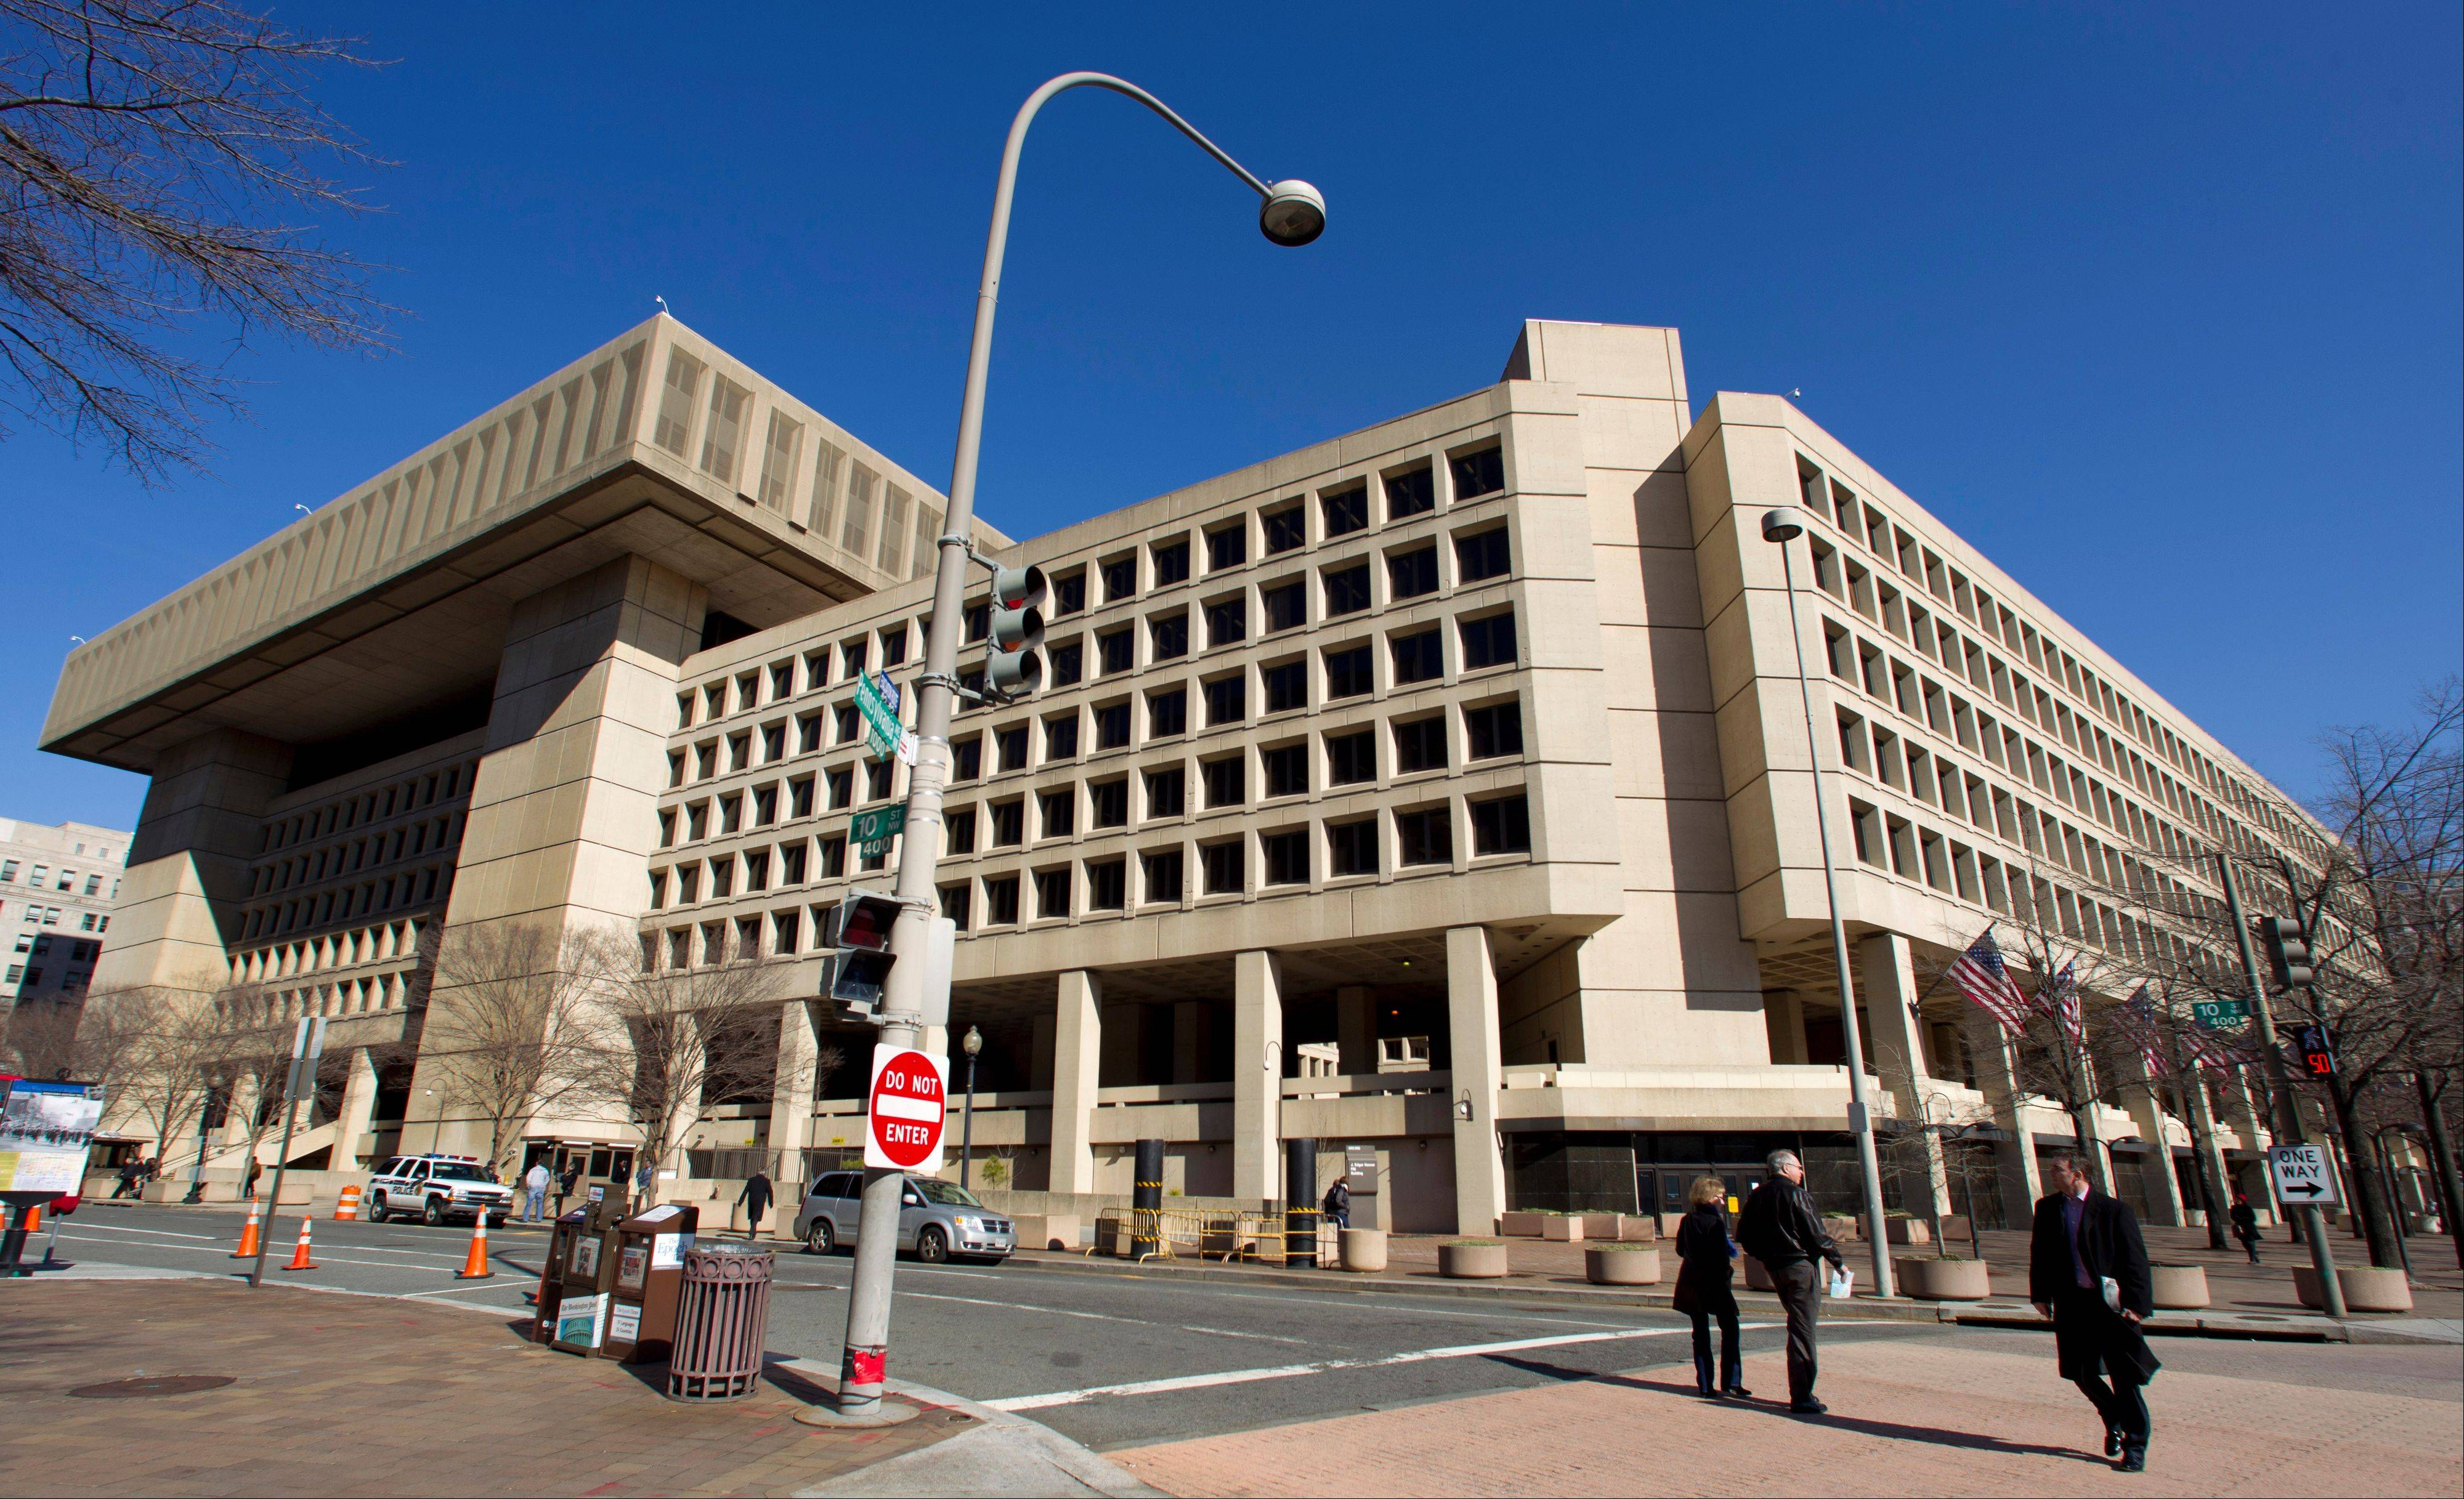 Associated Press/Feb. 3, 2012 The Federal Bureau of Investigation headquarters on Pennsylvania Avenue in Washington, which opened in 1974.